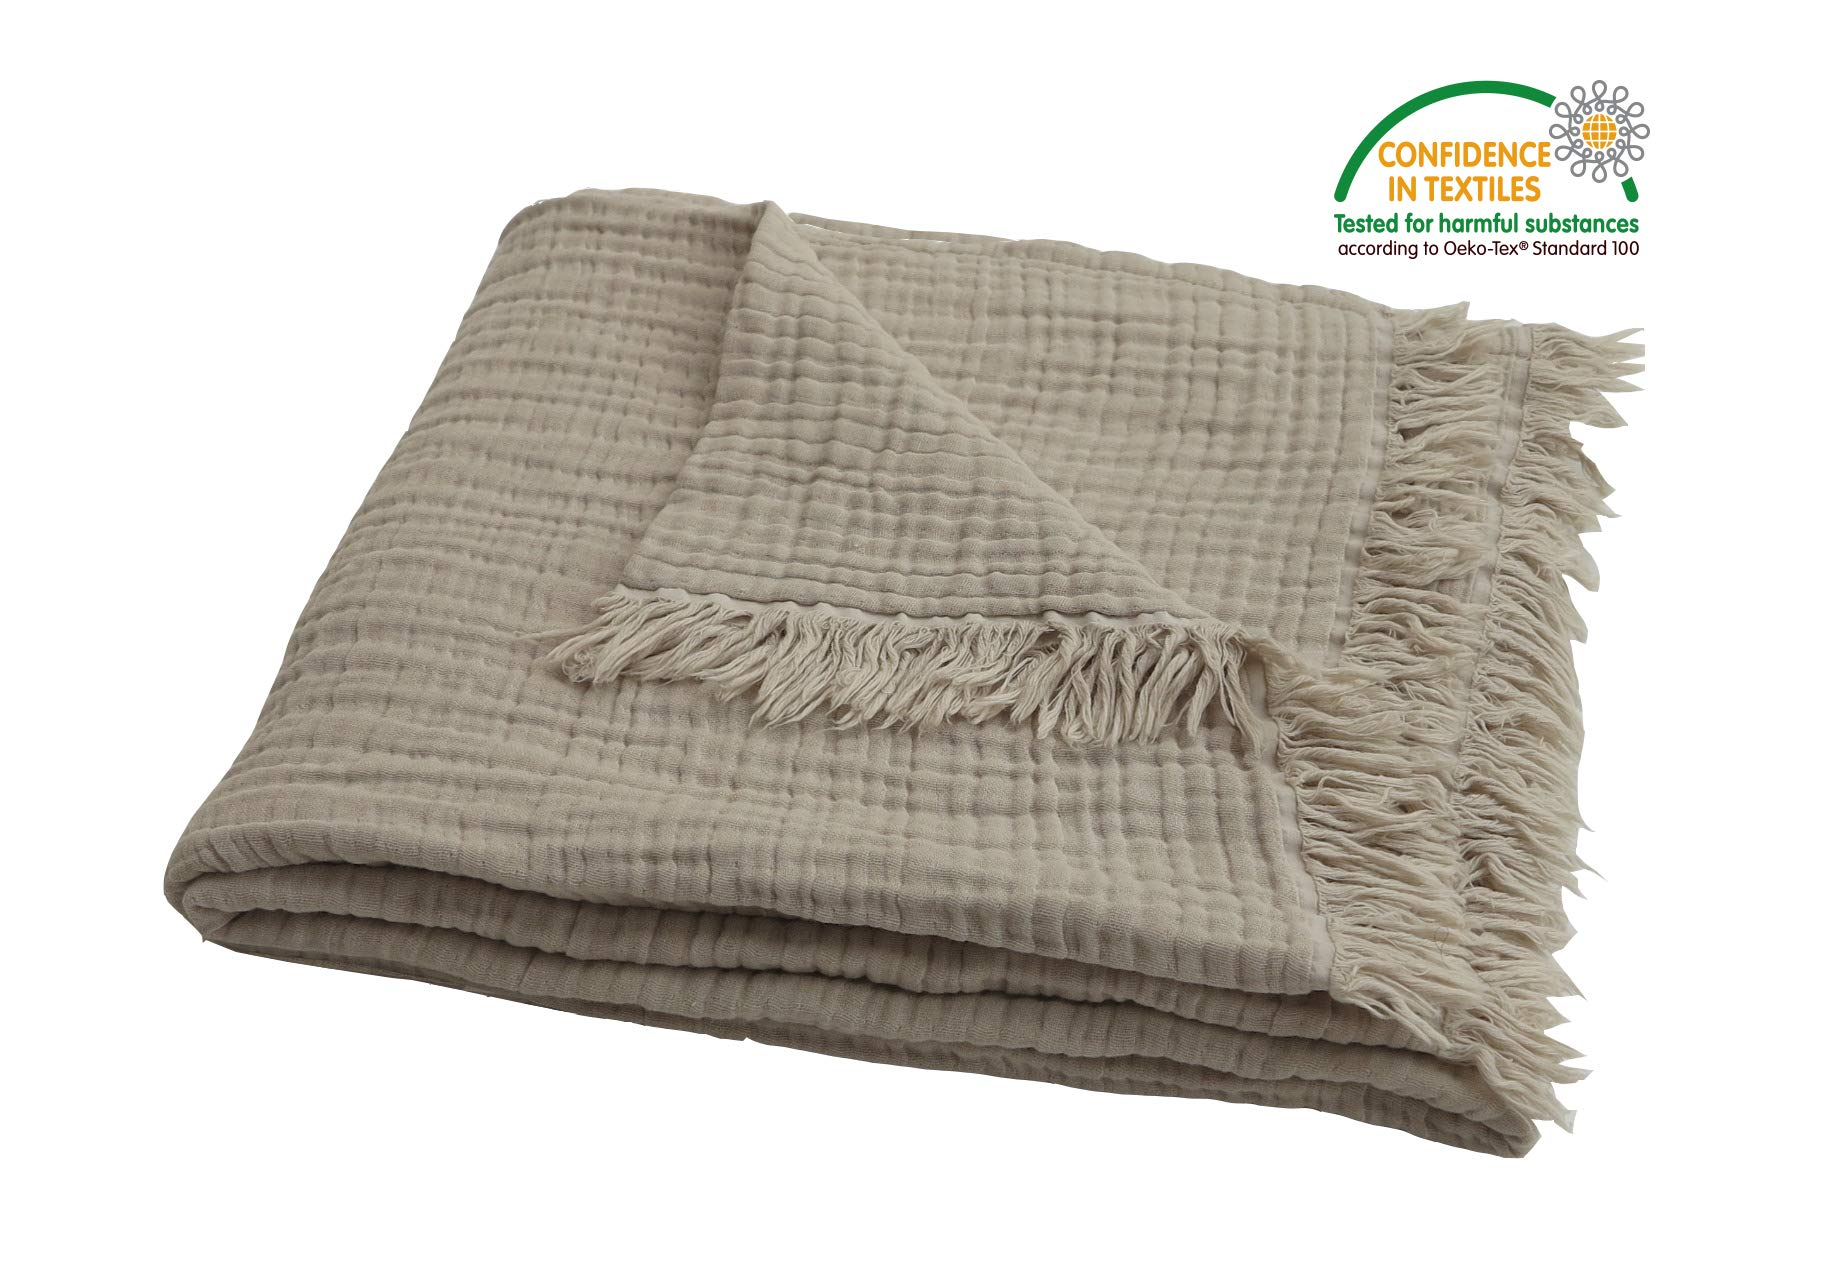 Pre-Washed Organic Muslin Throw Blanket for Adults,Kids Couch, Breathable Super Soft 100% Organic Cotton, Cozy, Lightweight, Warm, Soft, Everyday Use, Oeko-Tex 100 Certified (50''x60'' inches) (Khakis)